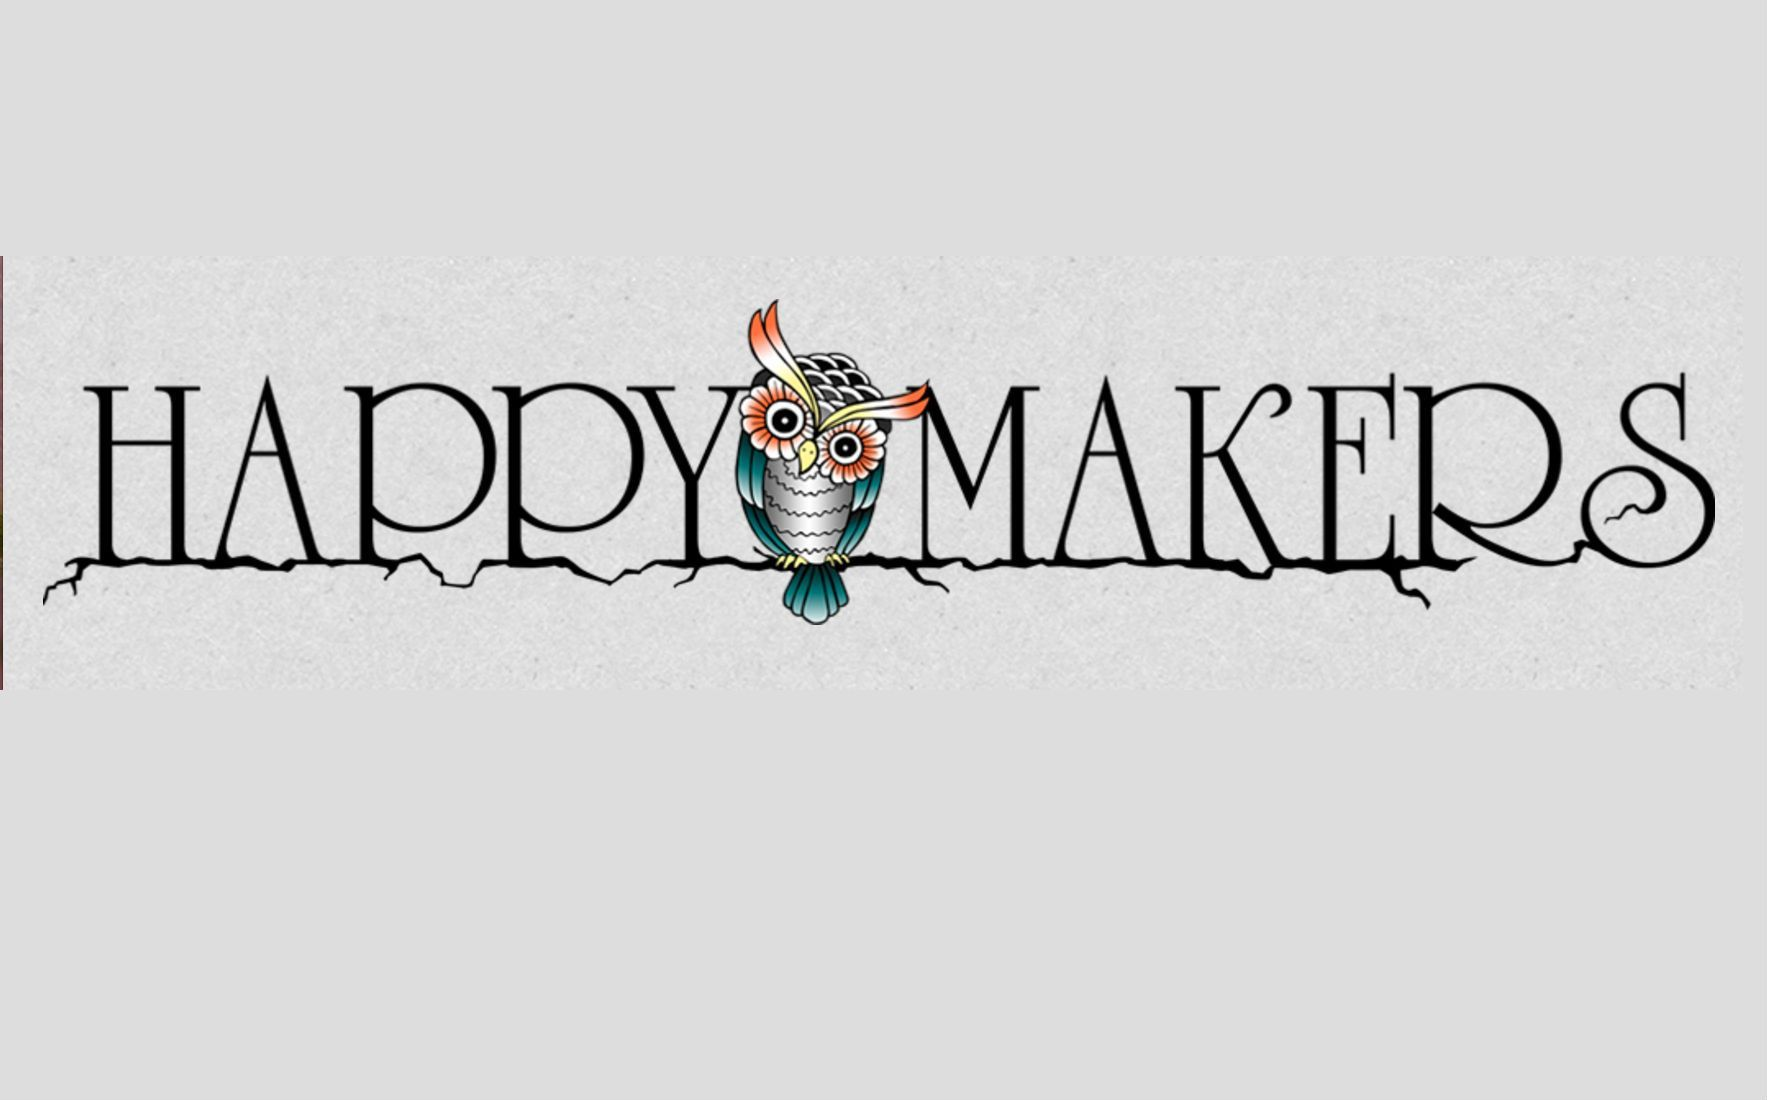 HappyMakers